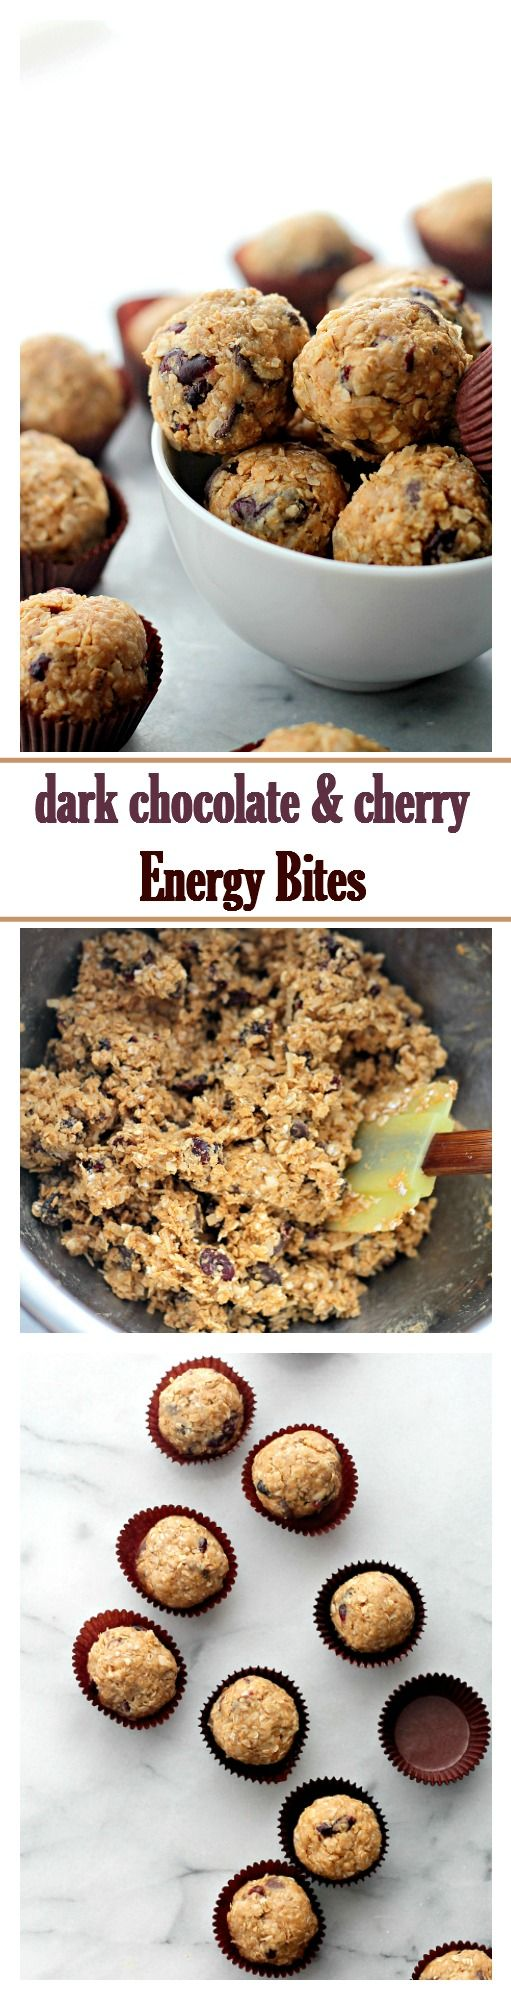 Dark Chocolate Cherry Energy Bites Recipe | Diethood